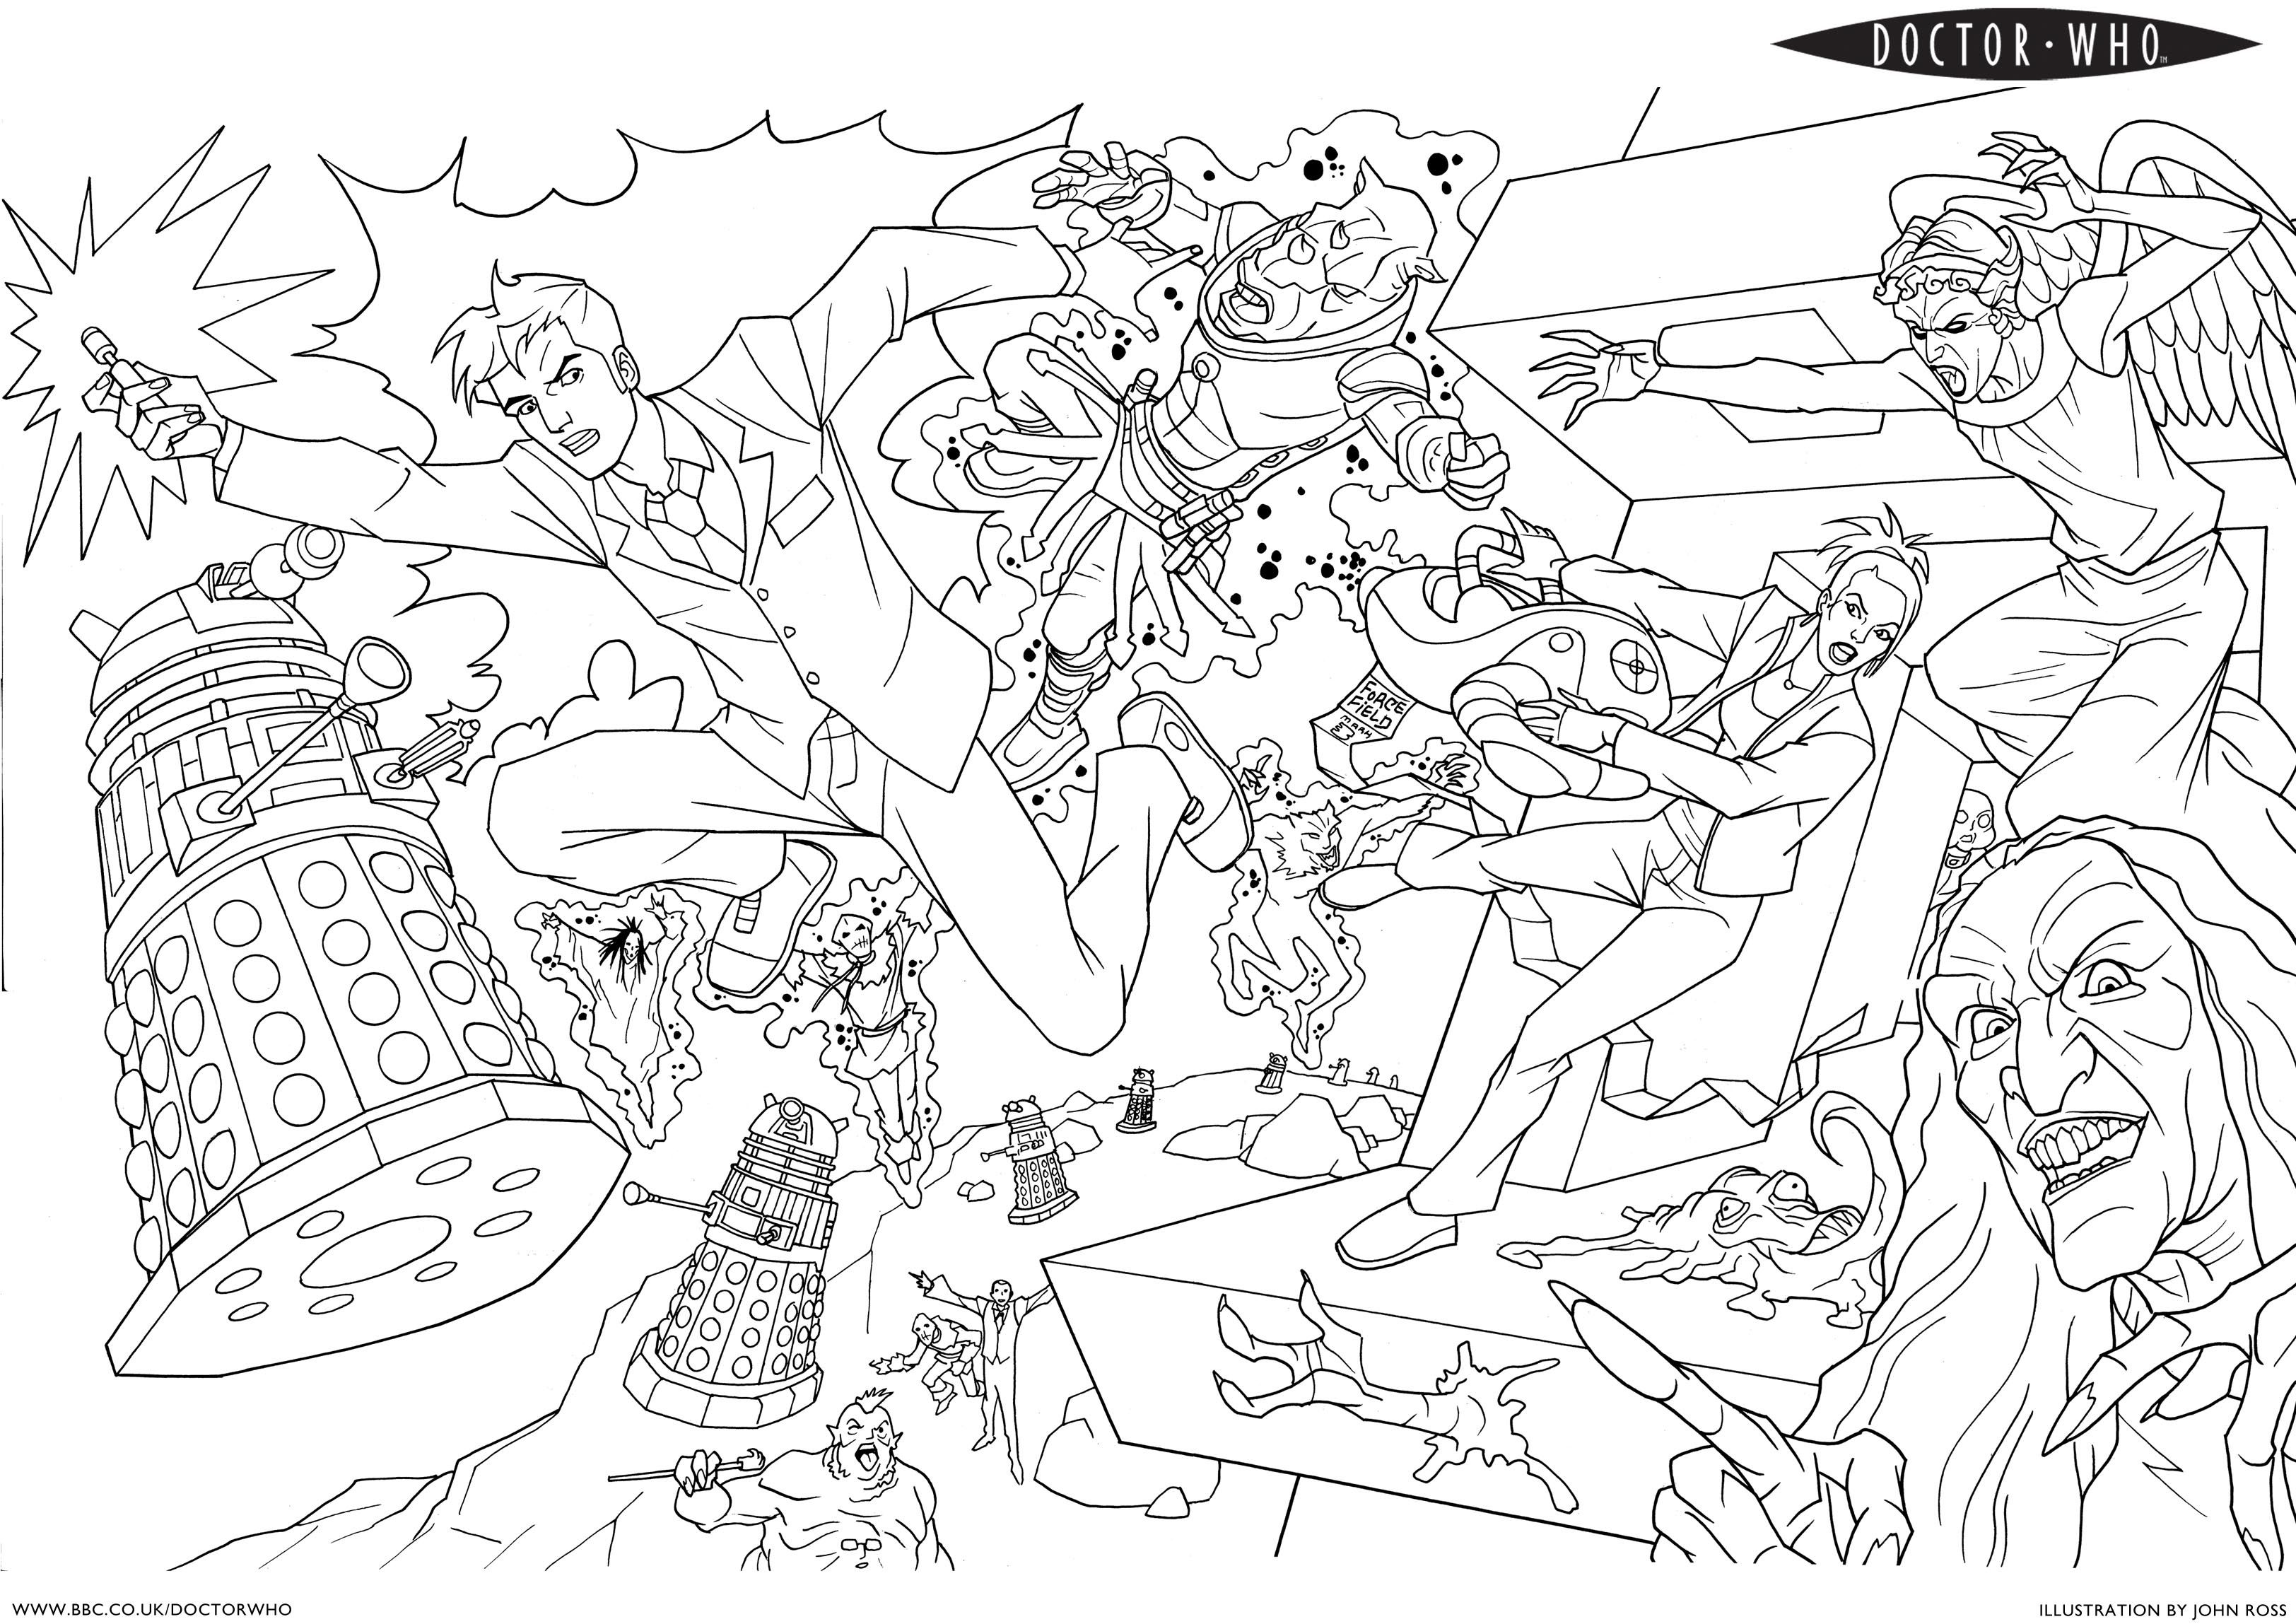 doctor who pictures to colour character from doctor who coloring pages free printable colour pictures to doctor who